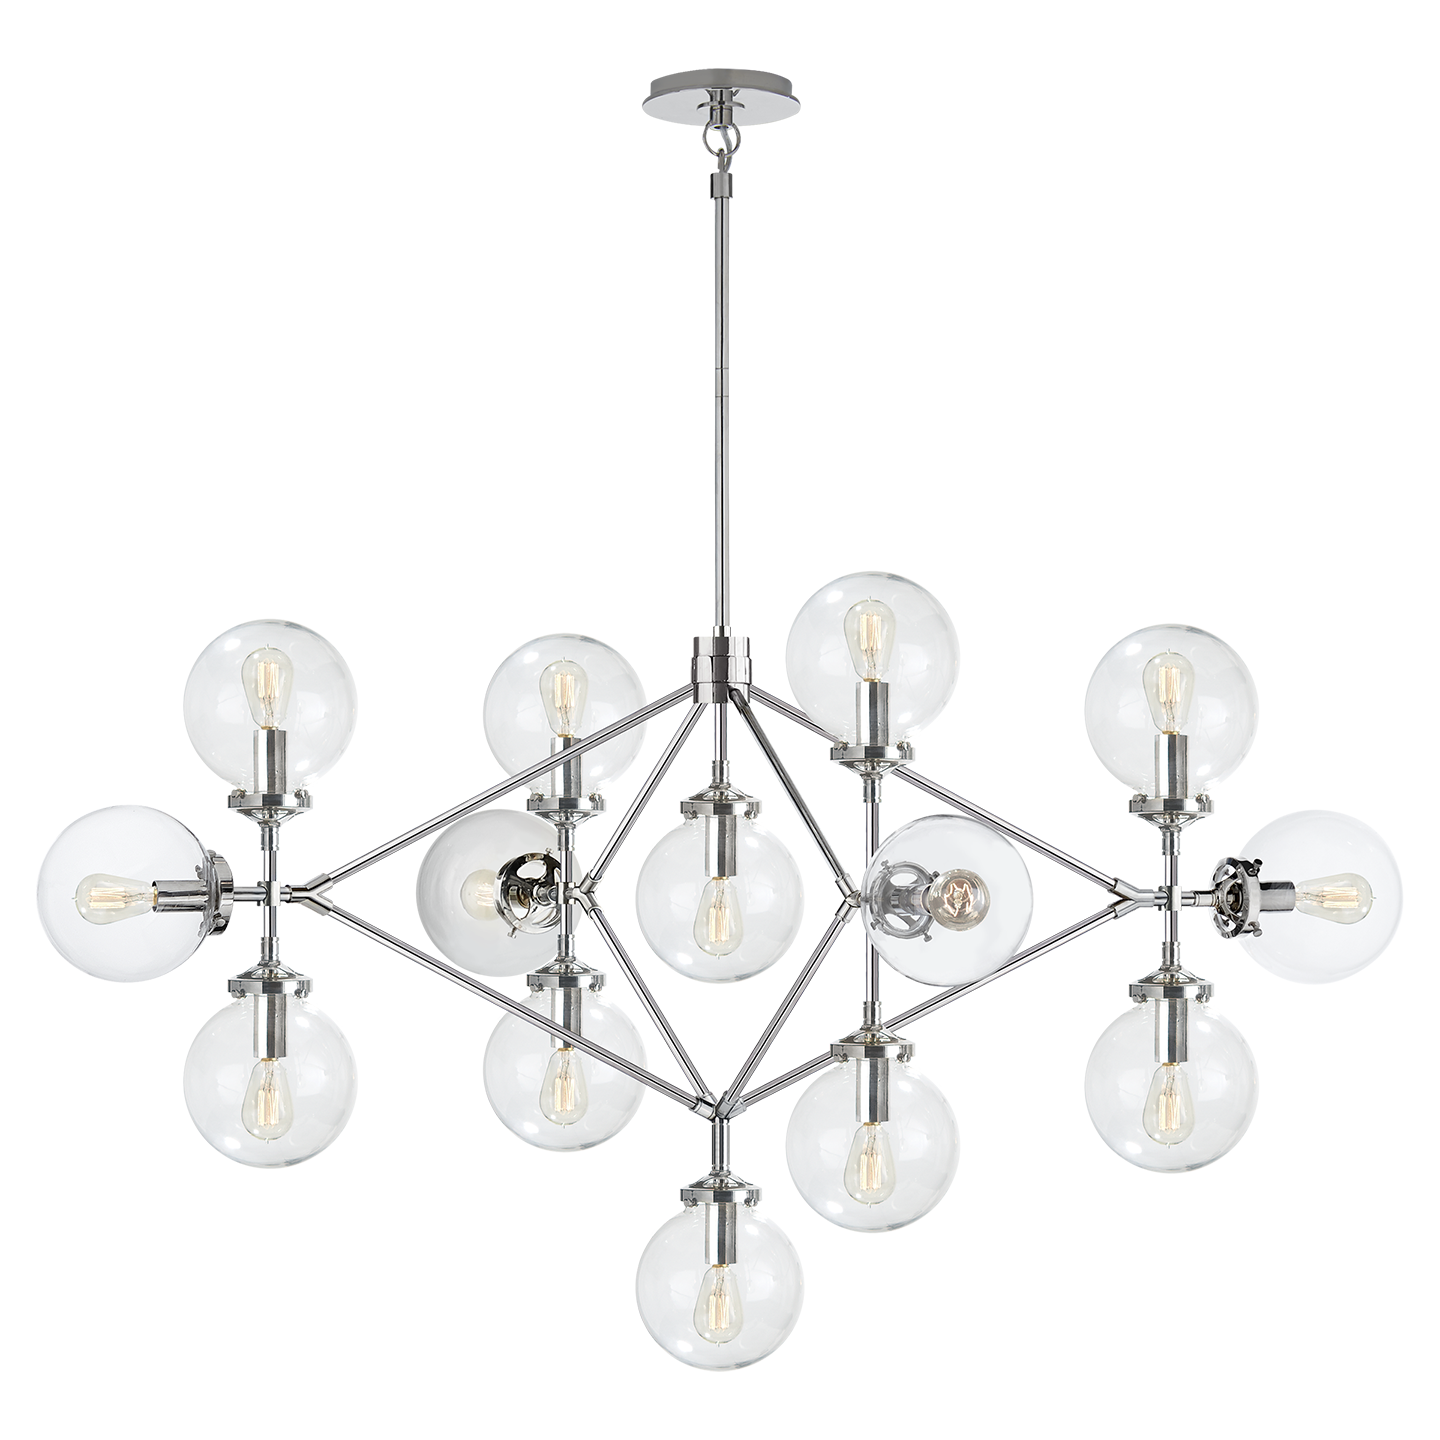 Bistro four arm chandelier info lighting ian k fowler bistro four arm chandelier aloadofball Image collections